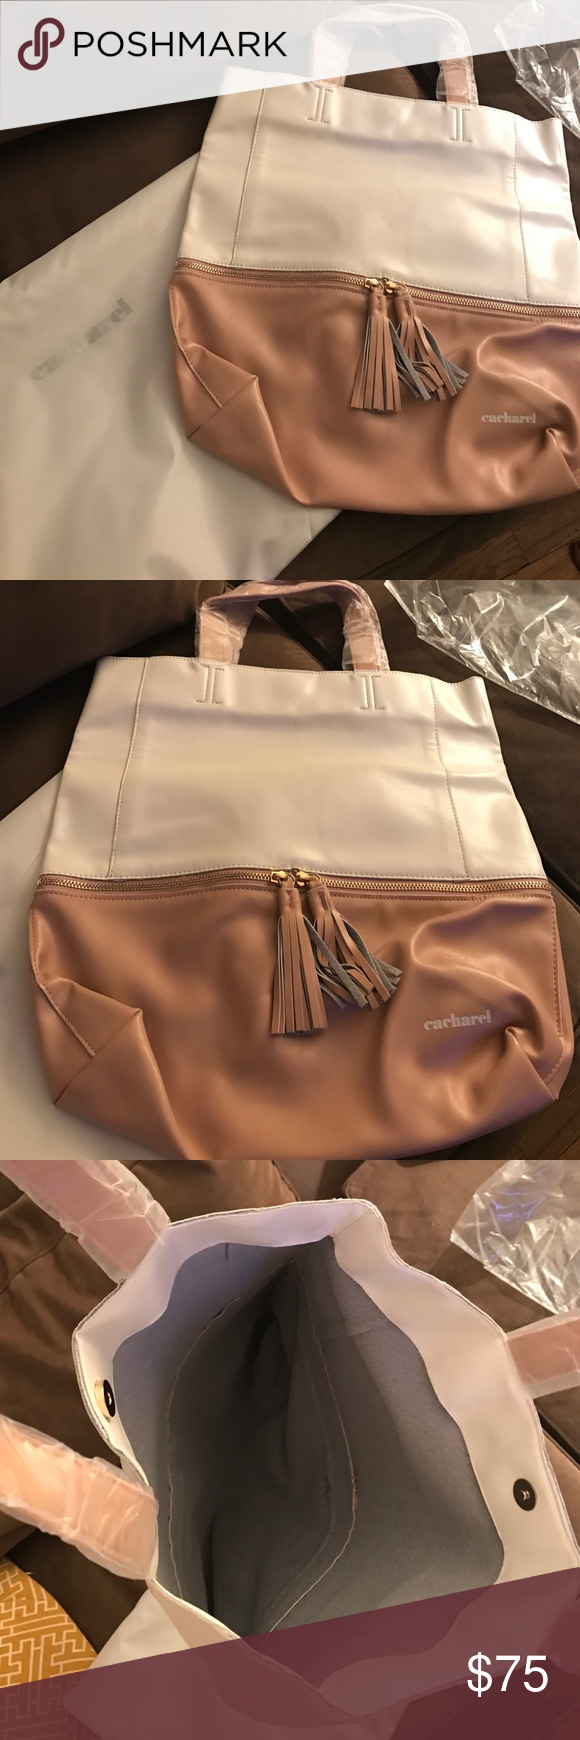 Cacharel Women's Leather Tote Bag White & Rose Beige leather tote from Cacharel (French brand). Never used with tag and wrapping still on. Cacharel Bags Totes